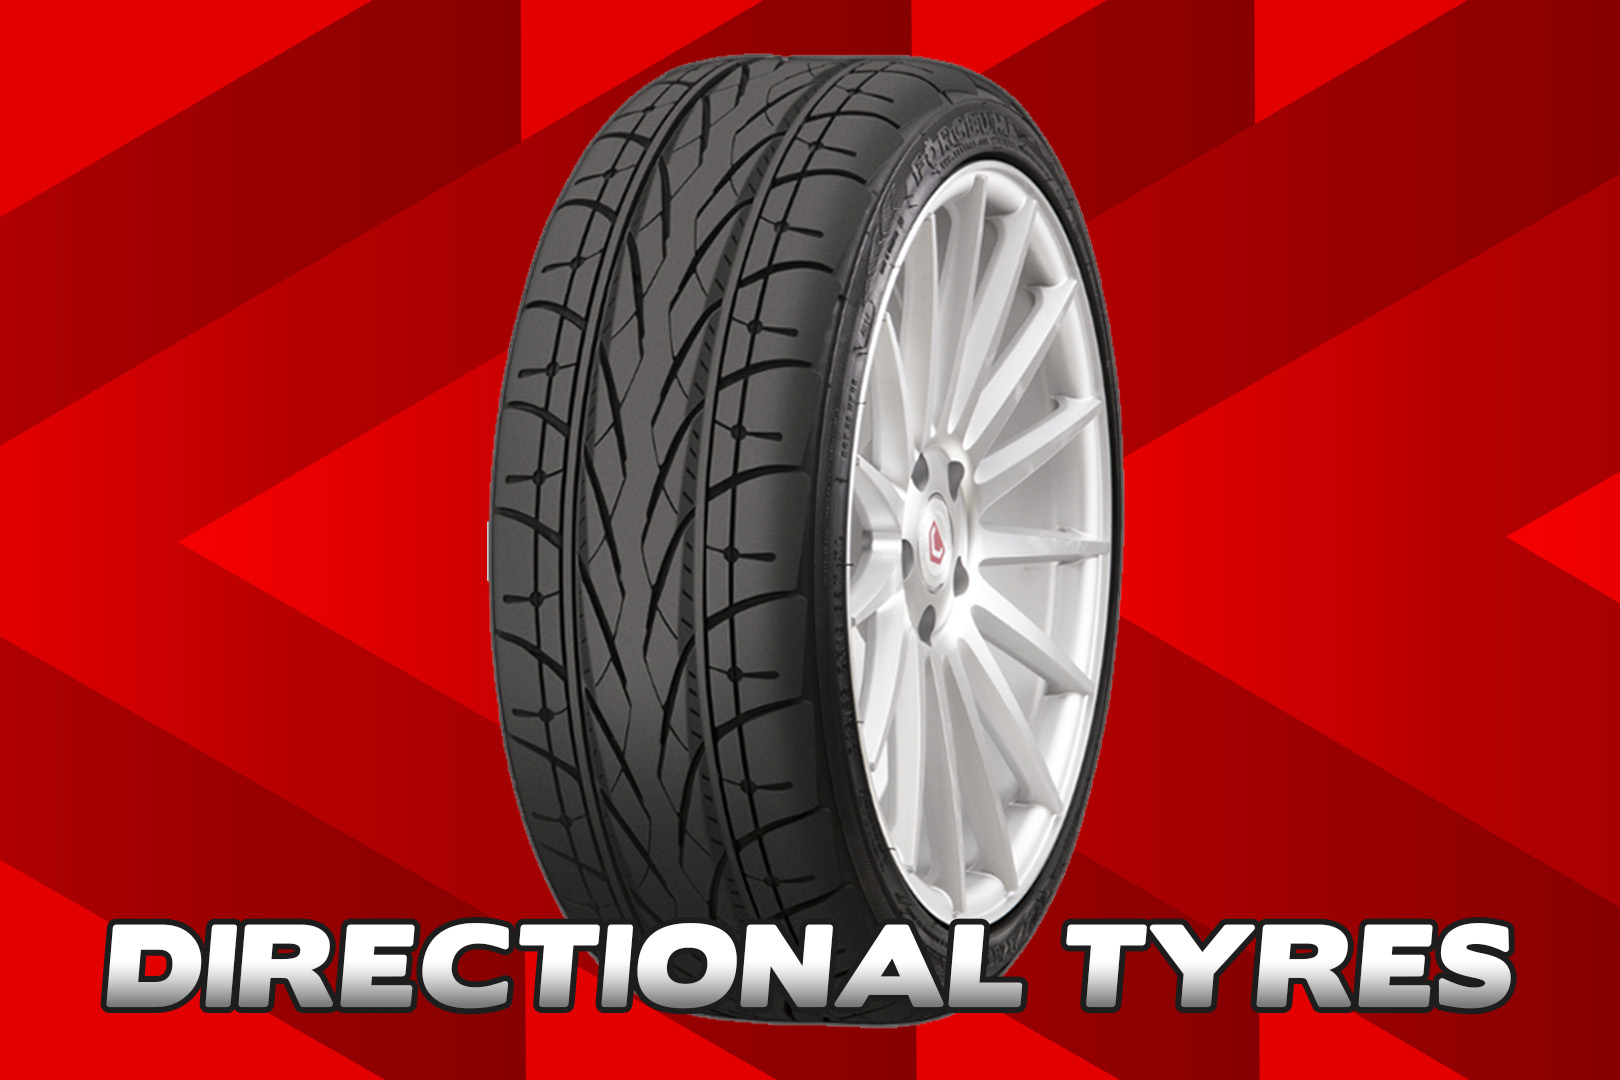 What Is A Directional Tyre?